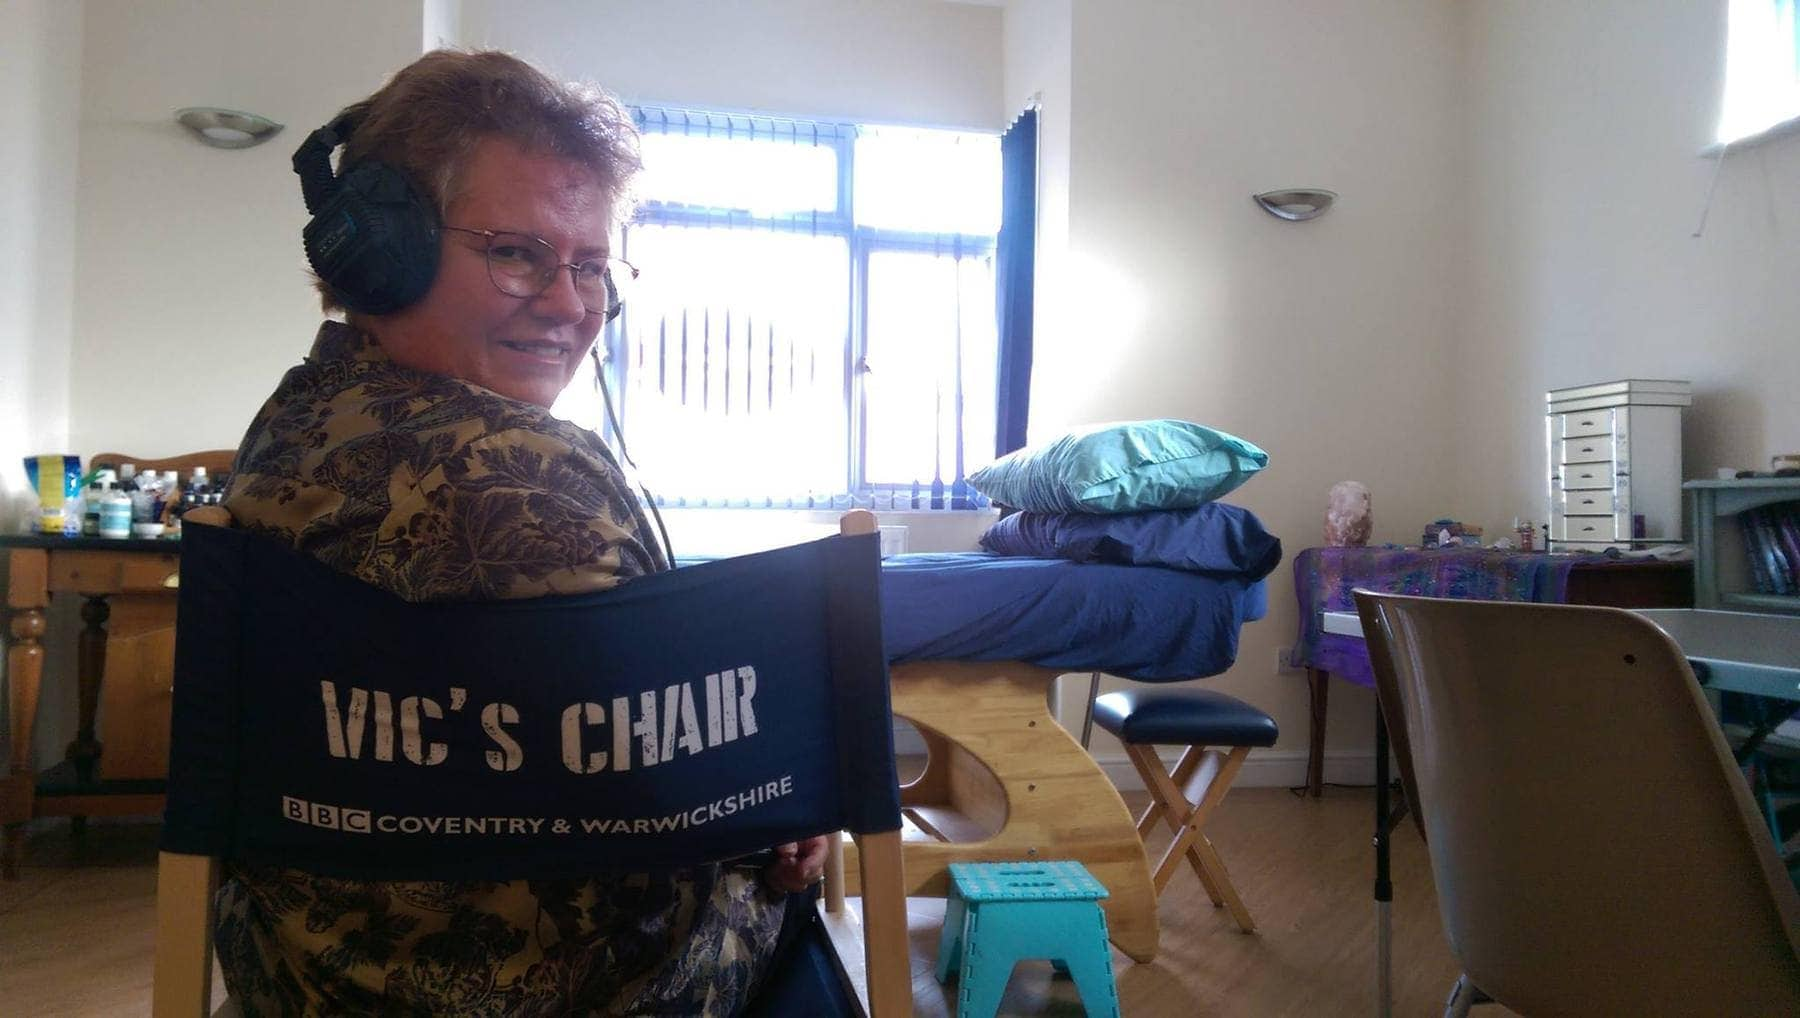 Me in Vic's Chair